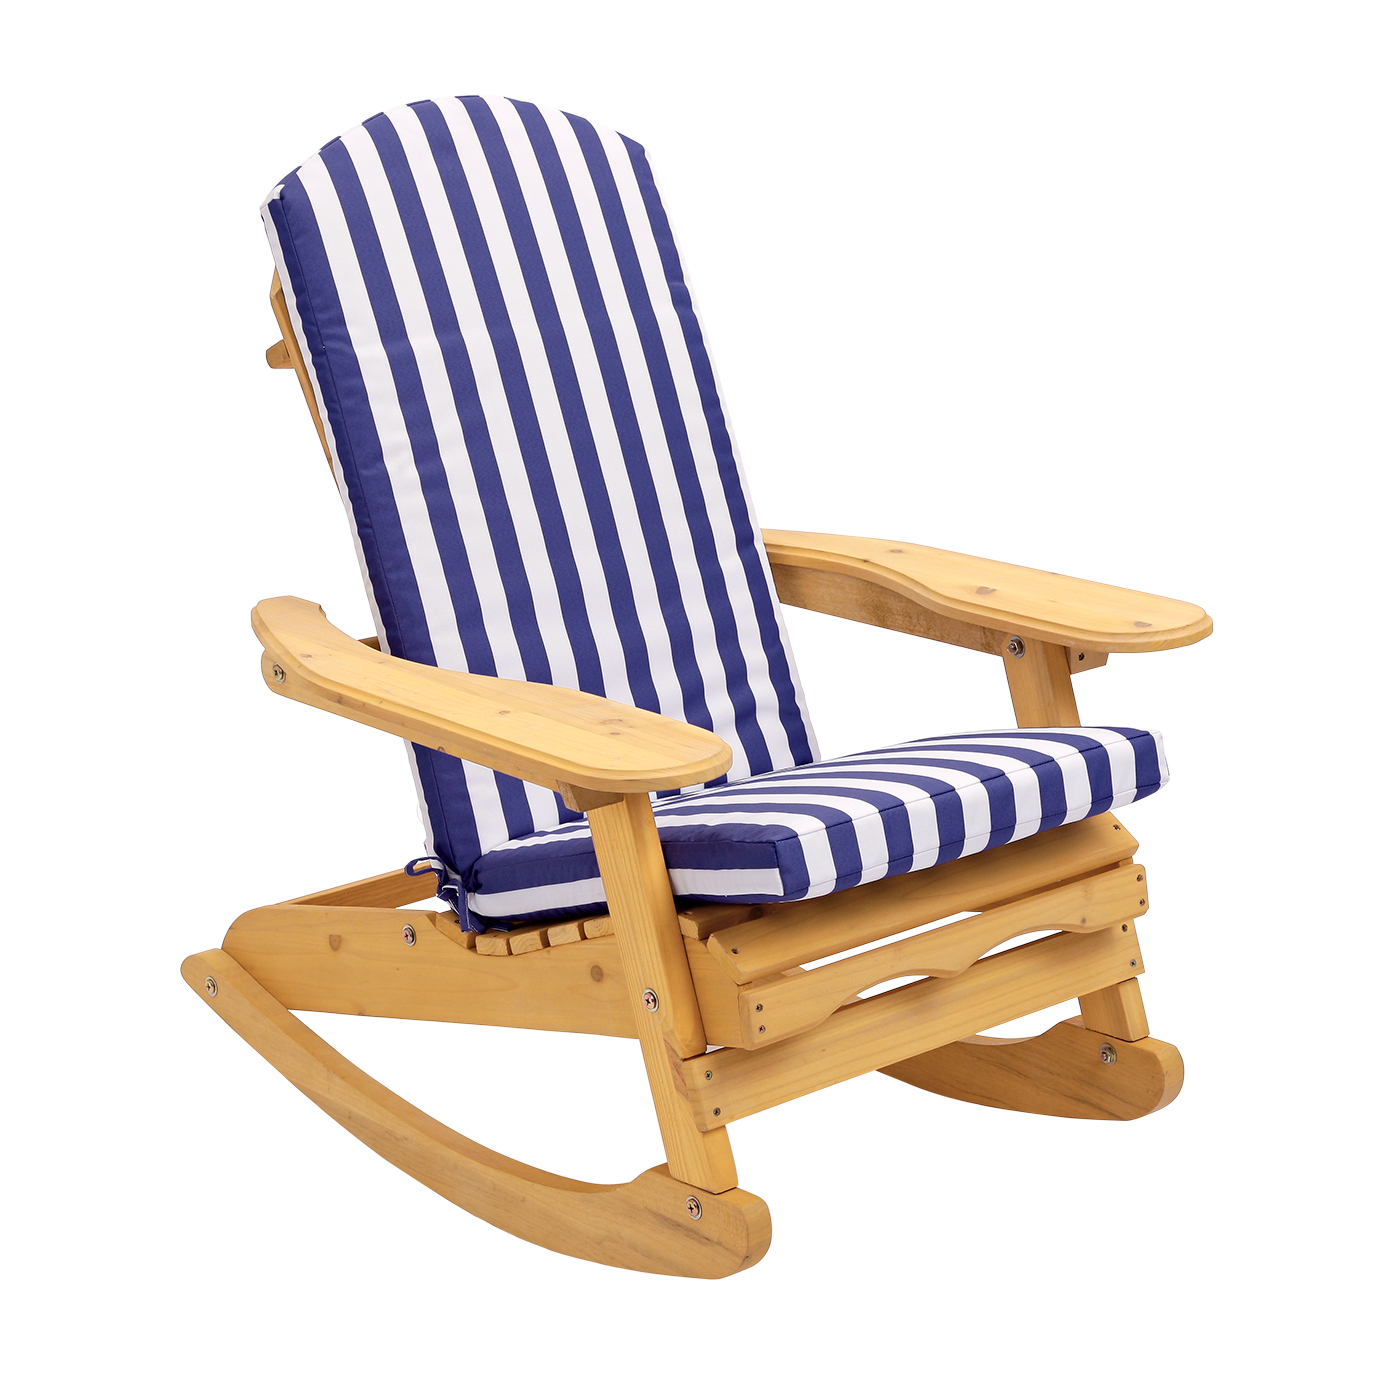 details about outdoor trueshopping adirondack bowland patio rocking chair with cushion